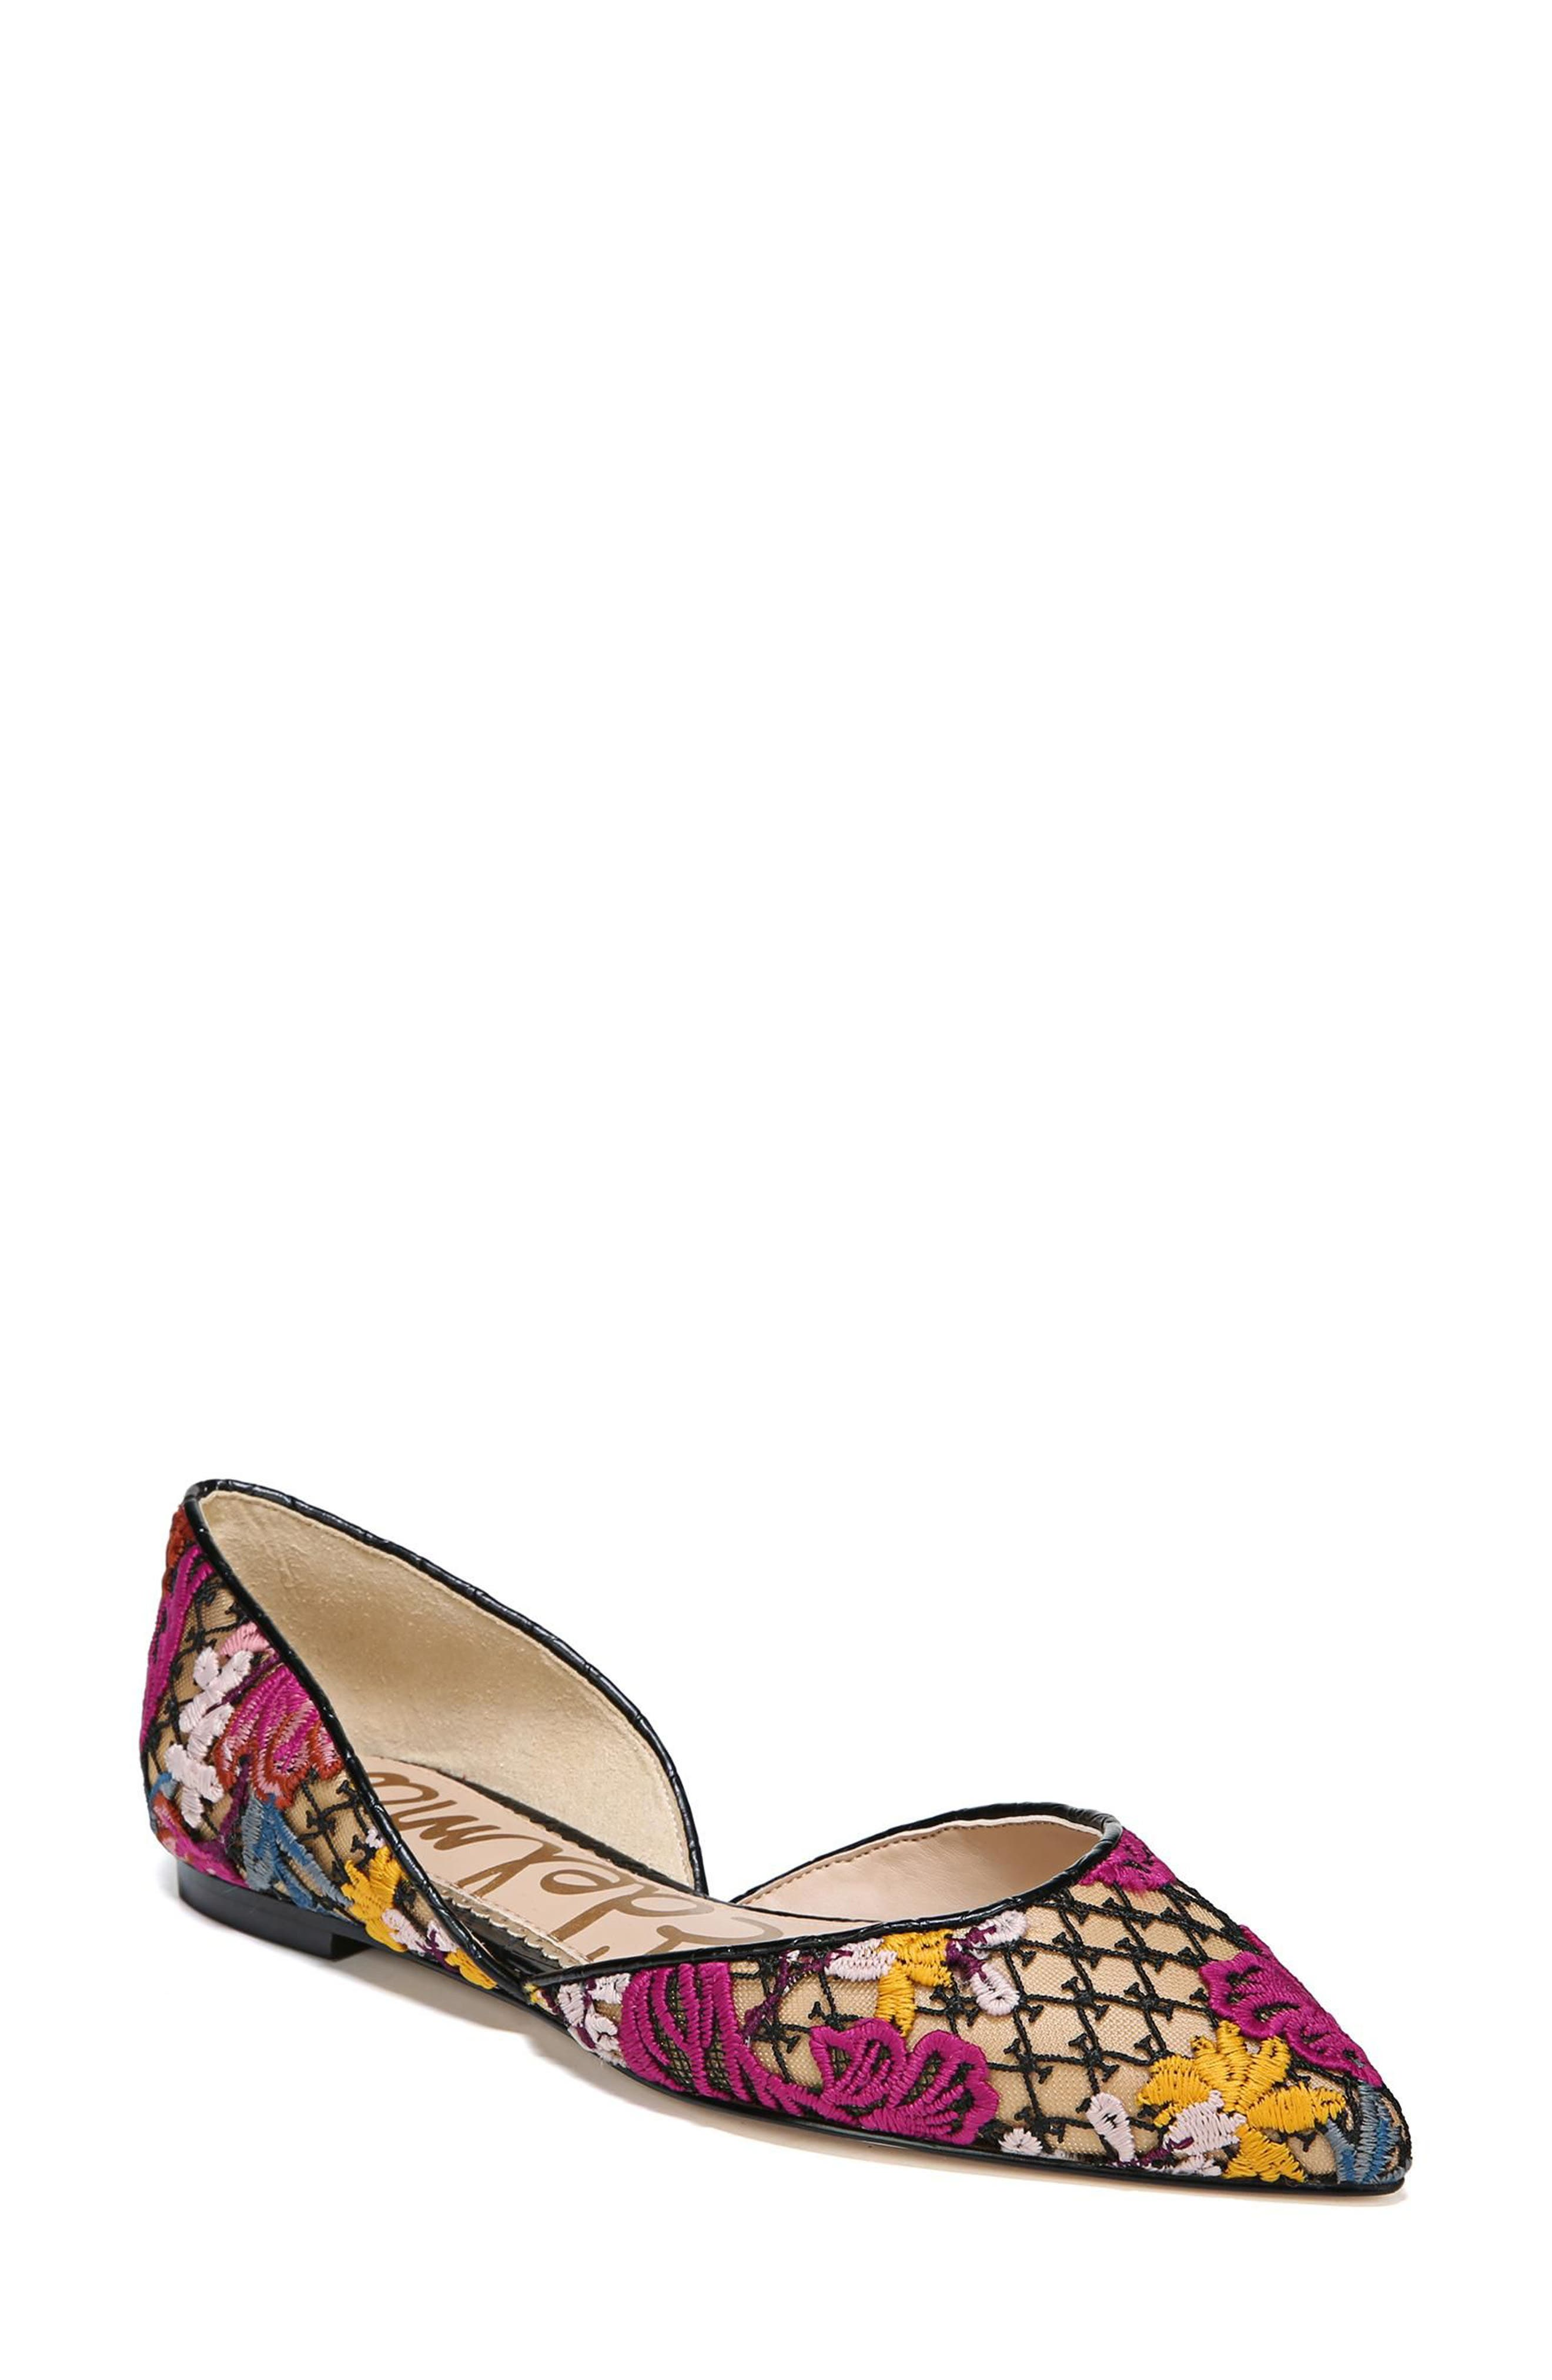 Rodney Pointy Toe d'Orsay Flat,                             Main thumbnail 1, color,                             Bright Multi Floral Lace